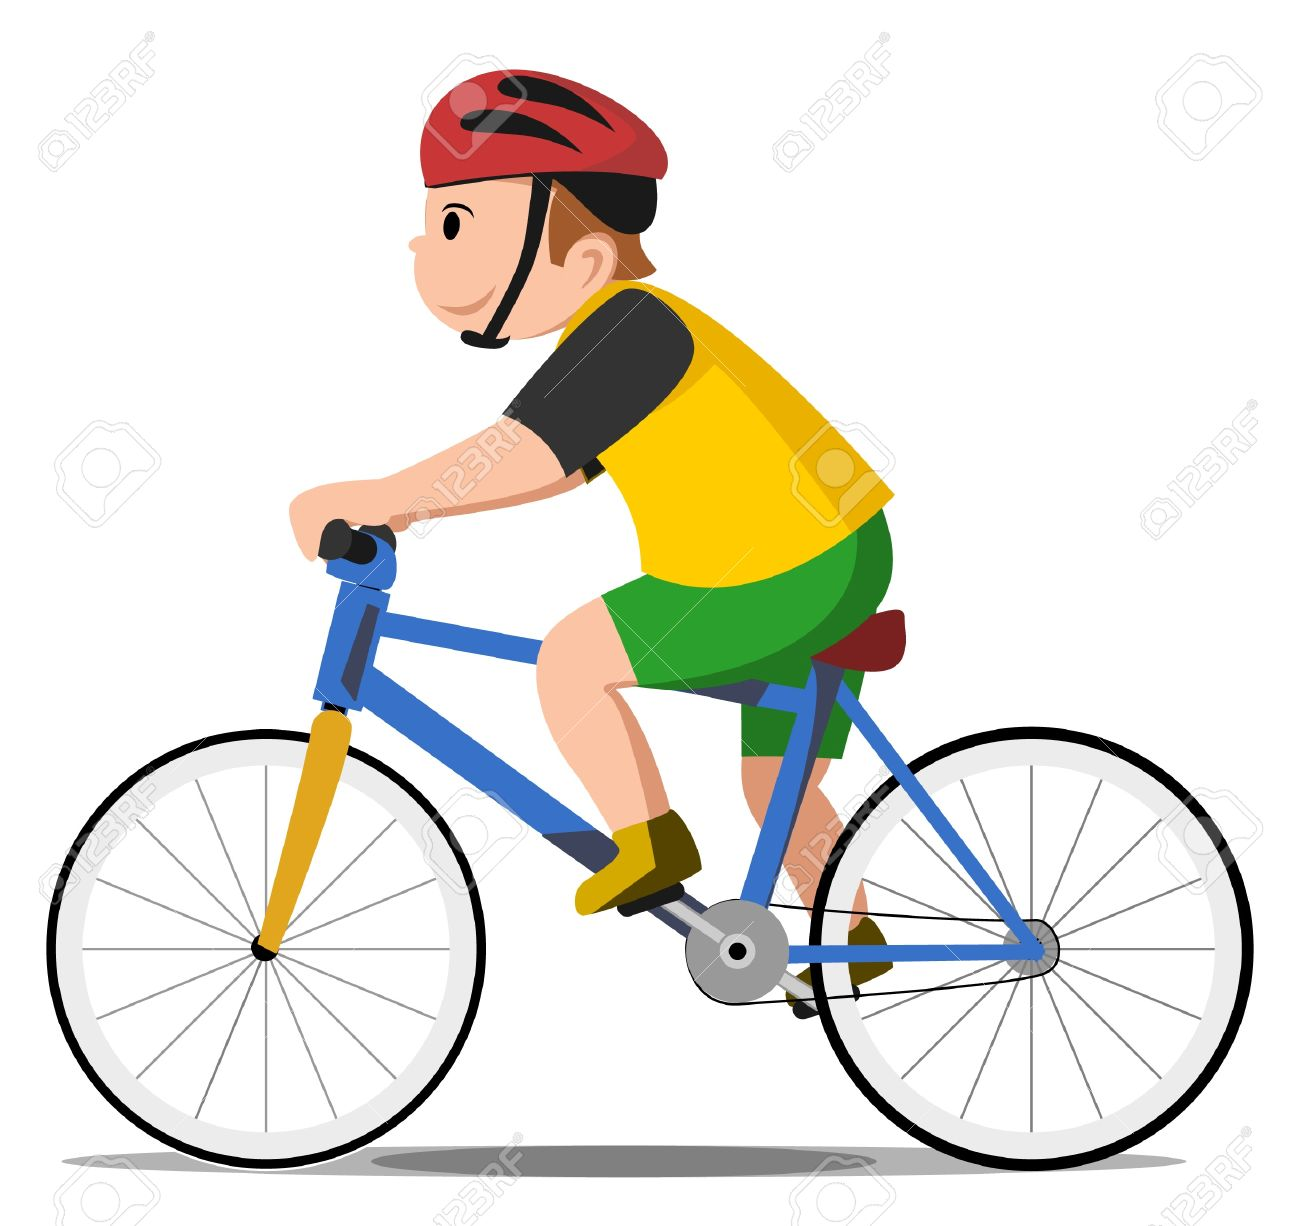 Bicycle Kid Royalty Free Cliparts, Vectors, And Stock Illustration ...